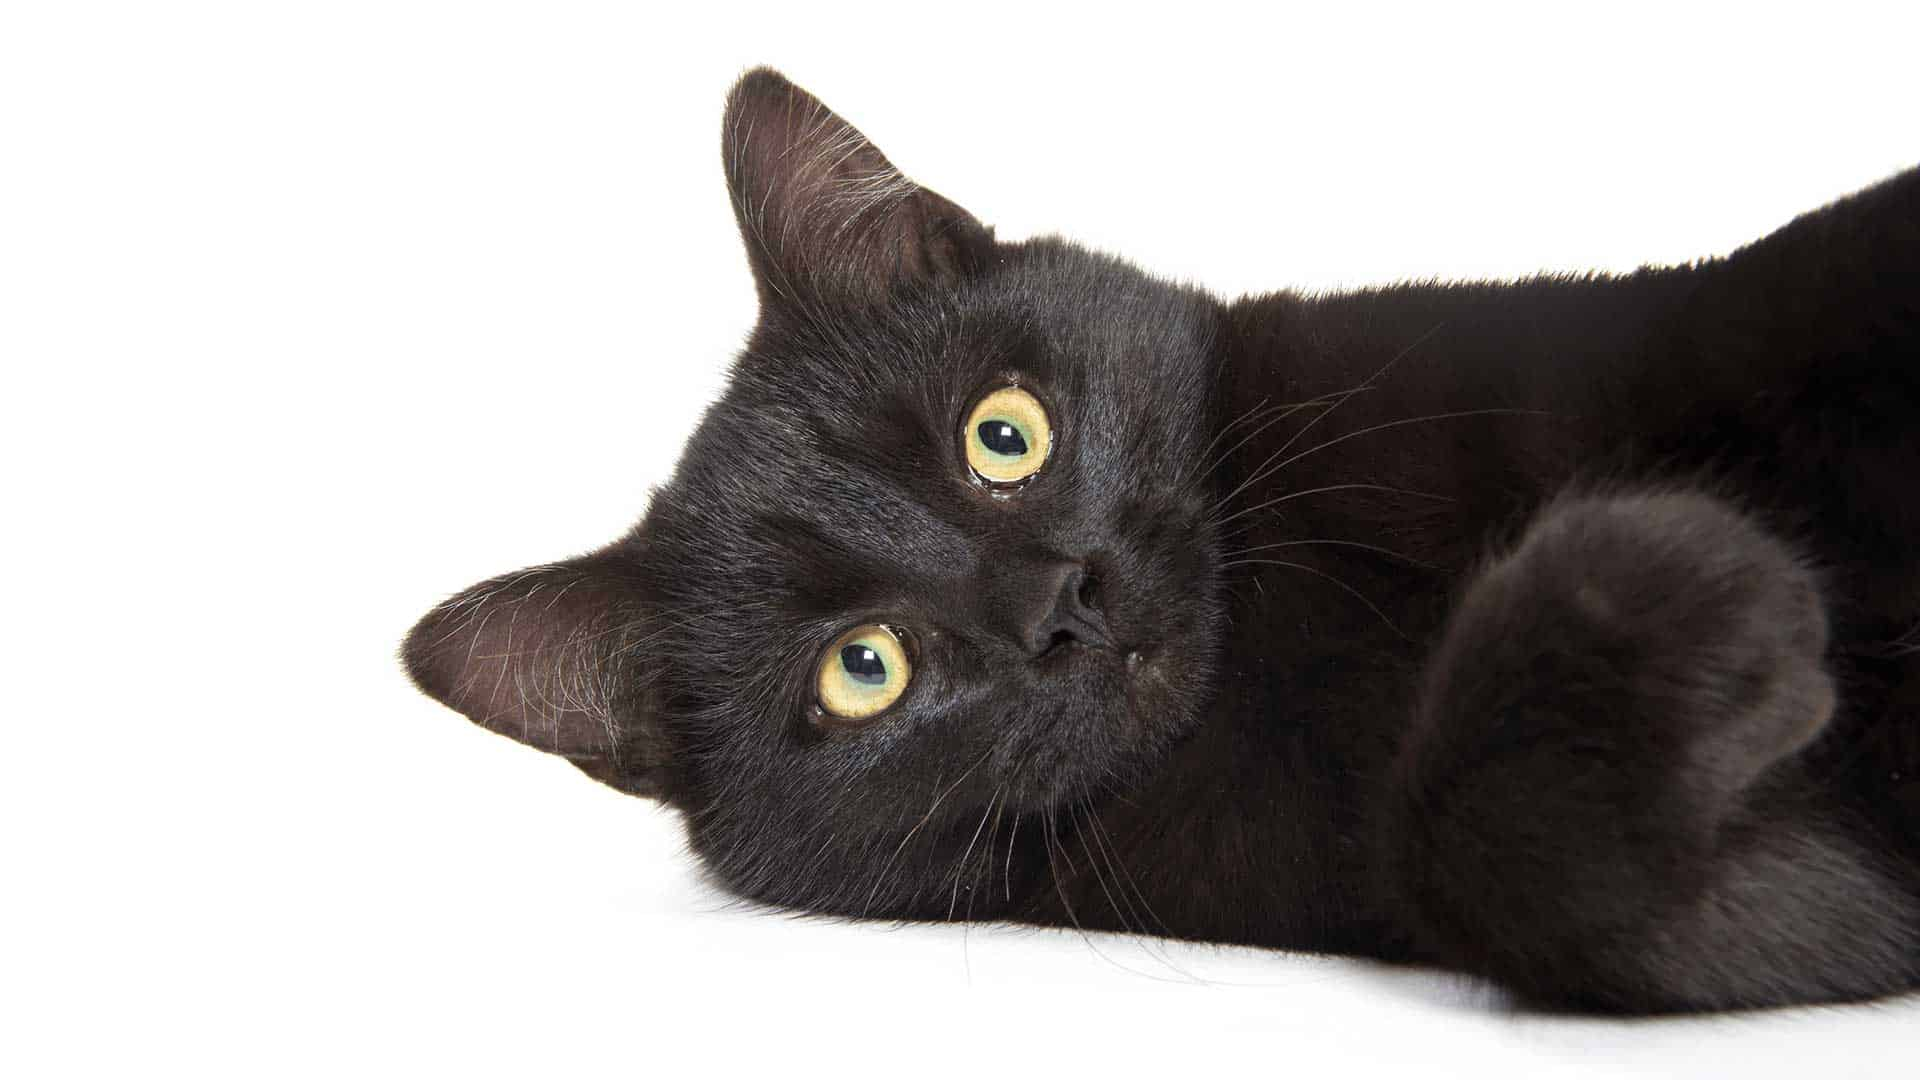 A black cat with beautiful, large eyes laying on his side looking at the camera.